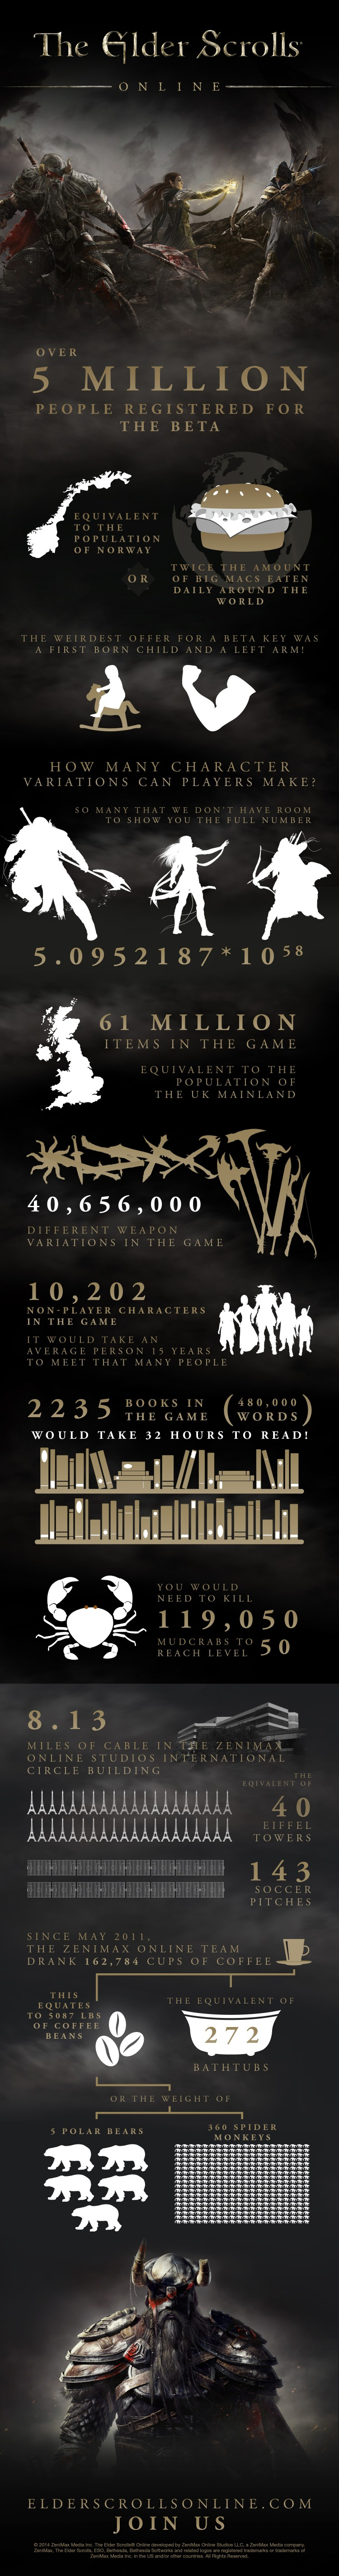 The_Elder_Scrolls_Online_infographic_English-750x5706